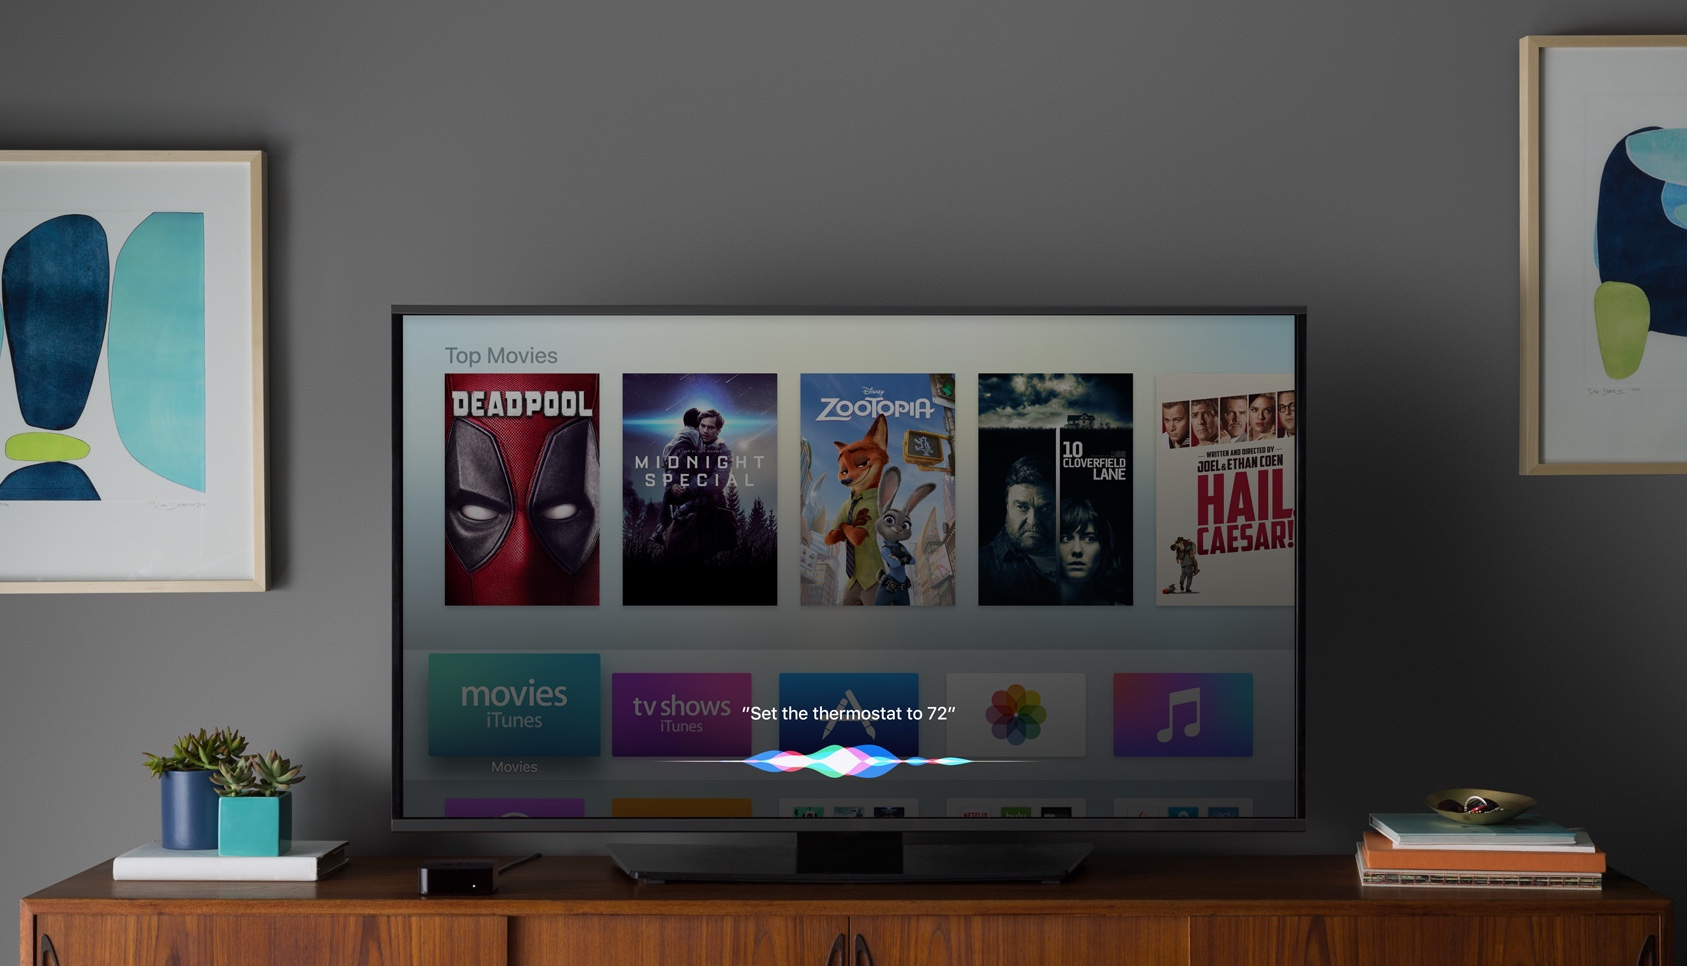 Apple TV HD is perfect for any smart home w/ streaming, HomeKit, more: $90 (Refurb, Orig. $149)